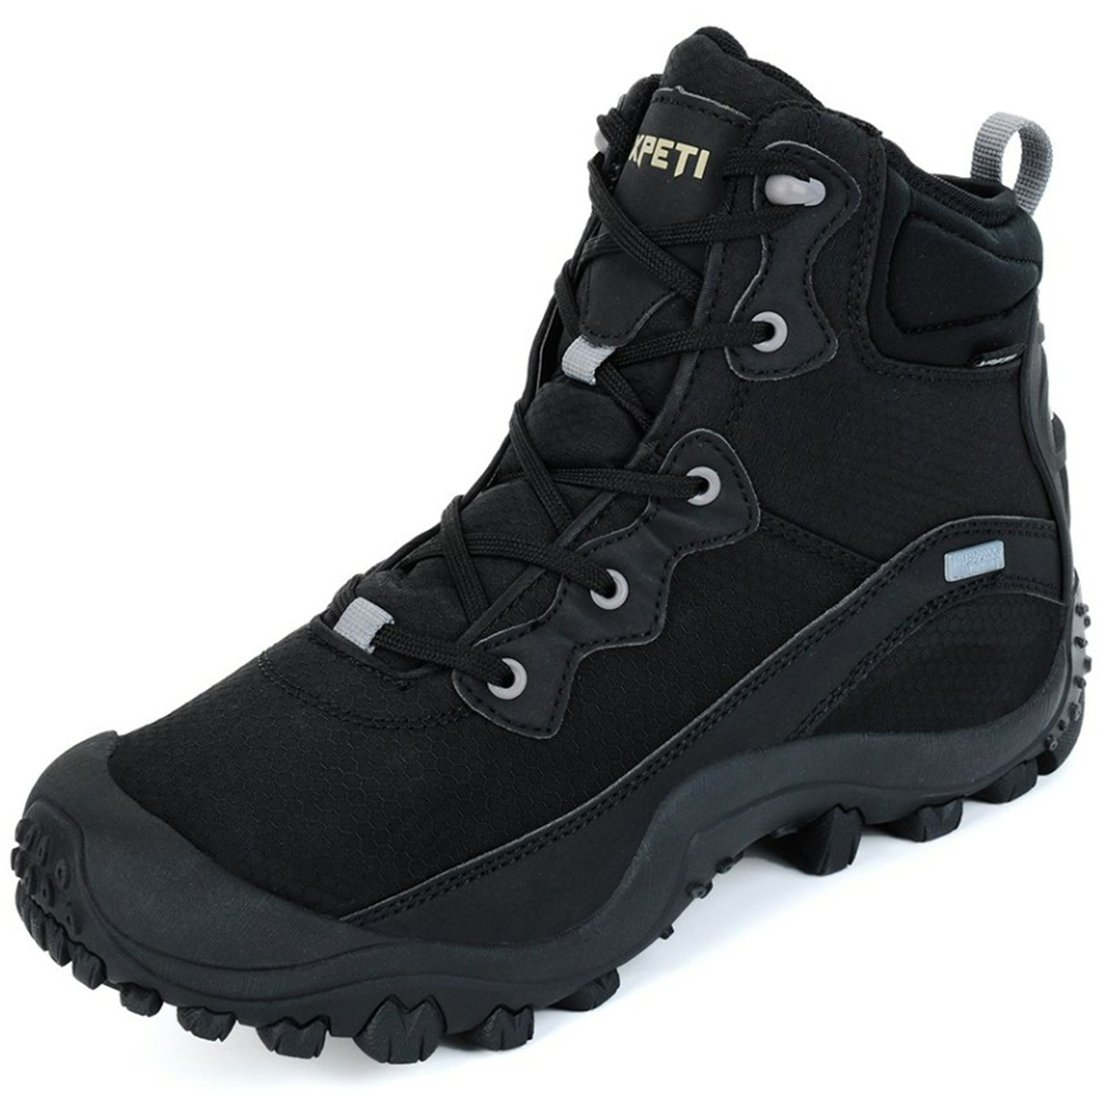 XPETI Men's Waterproof Mid Trail Hiking Outdoor Boot Black 7